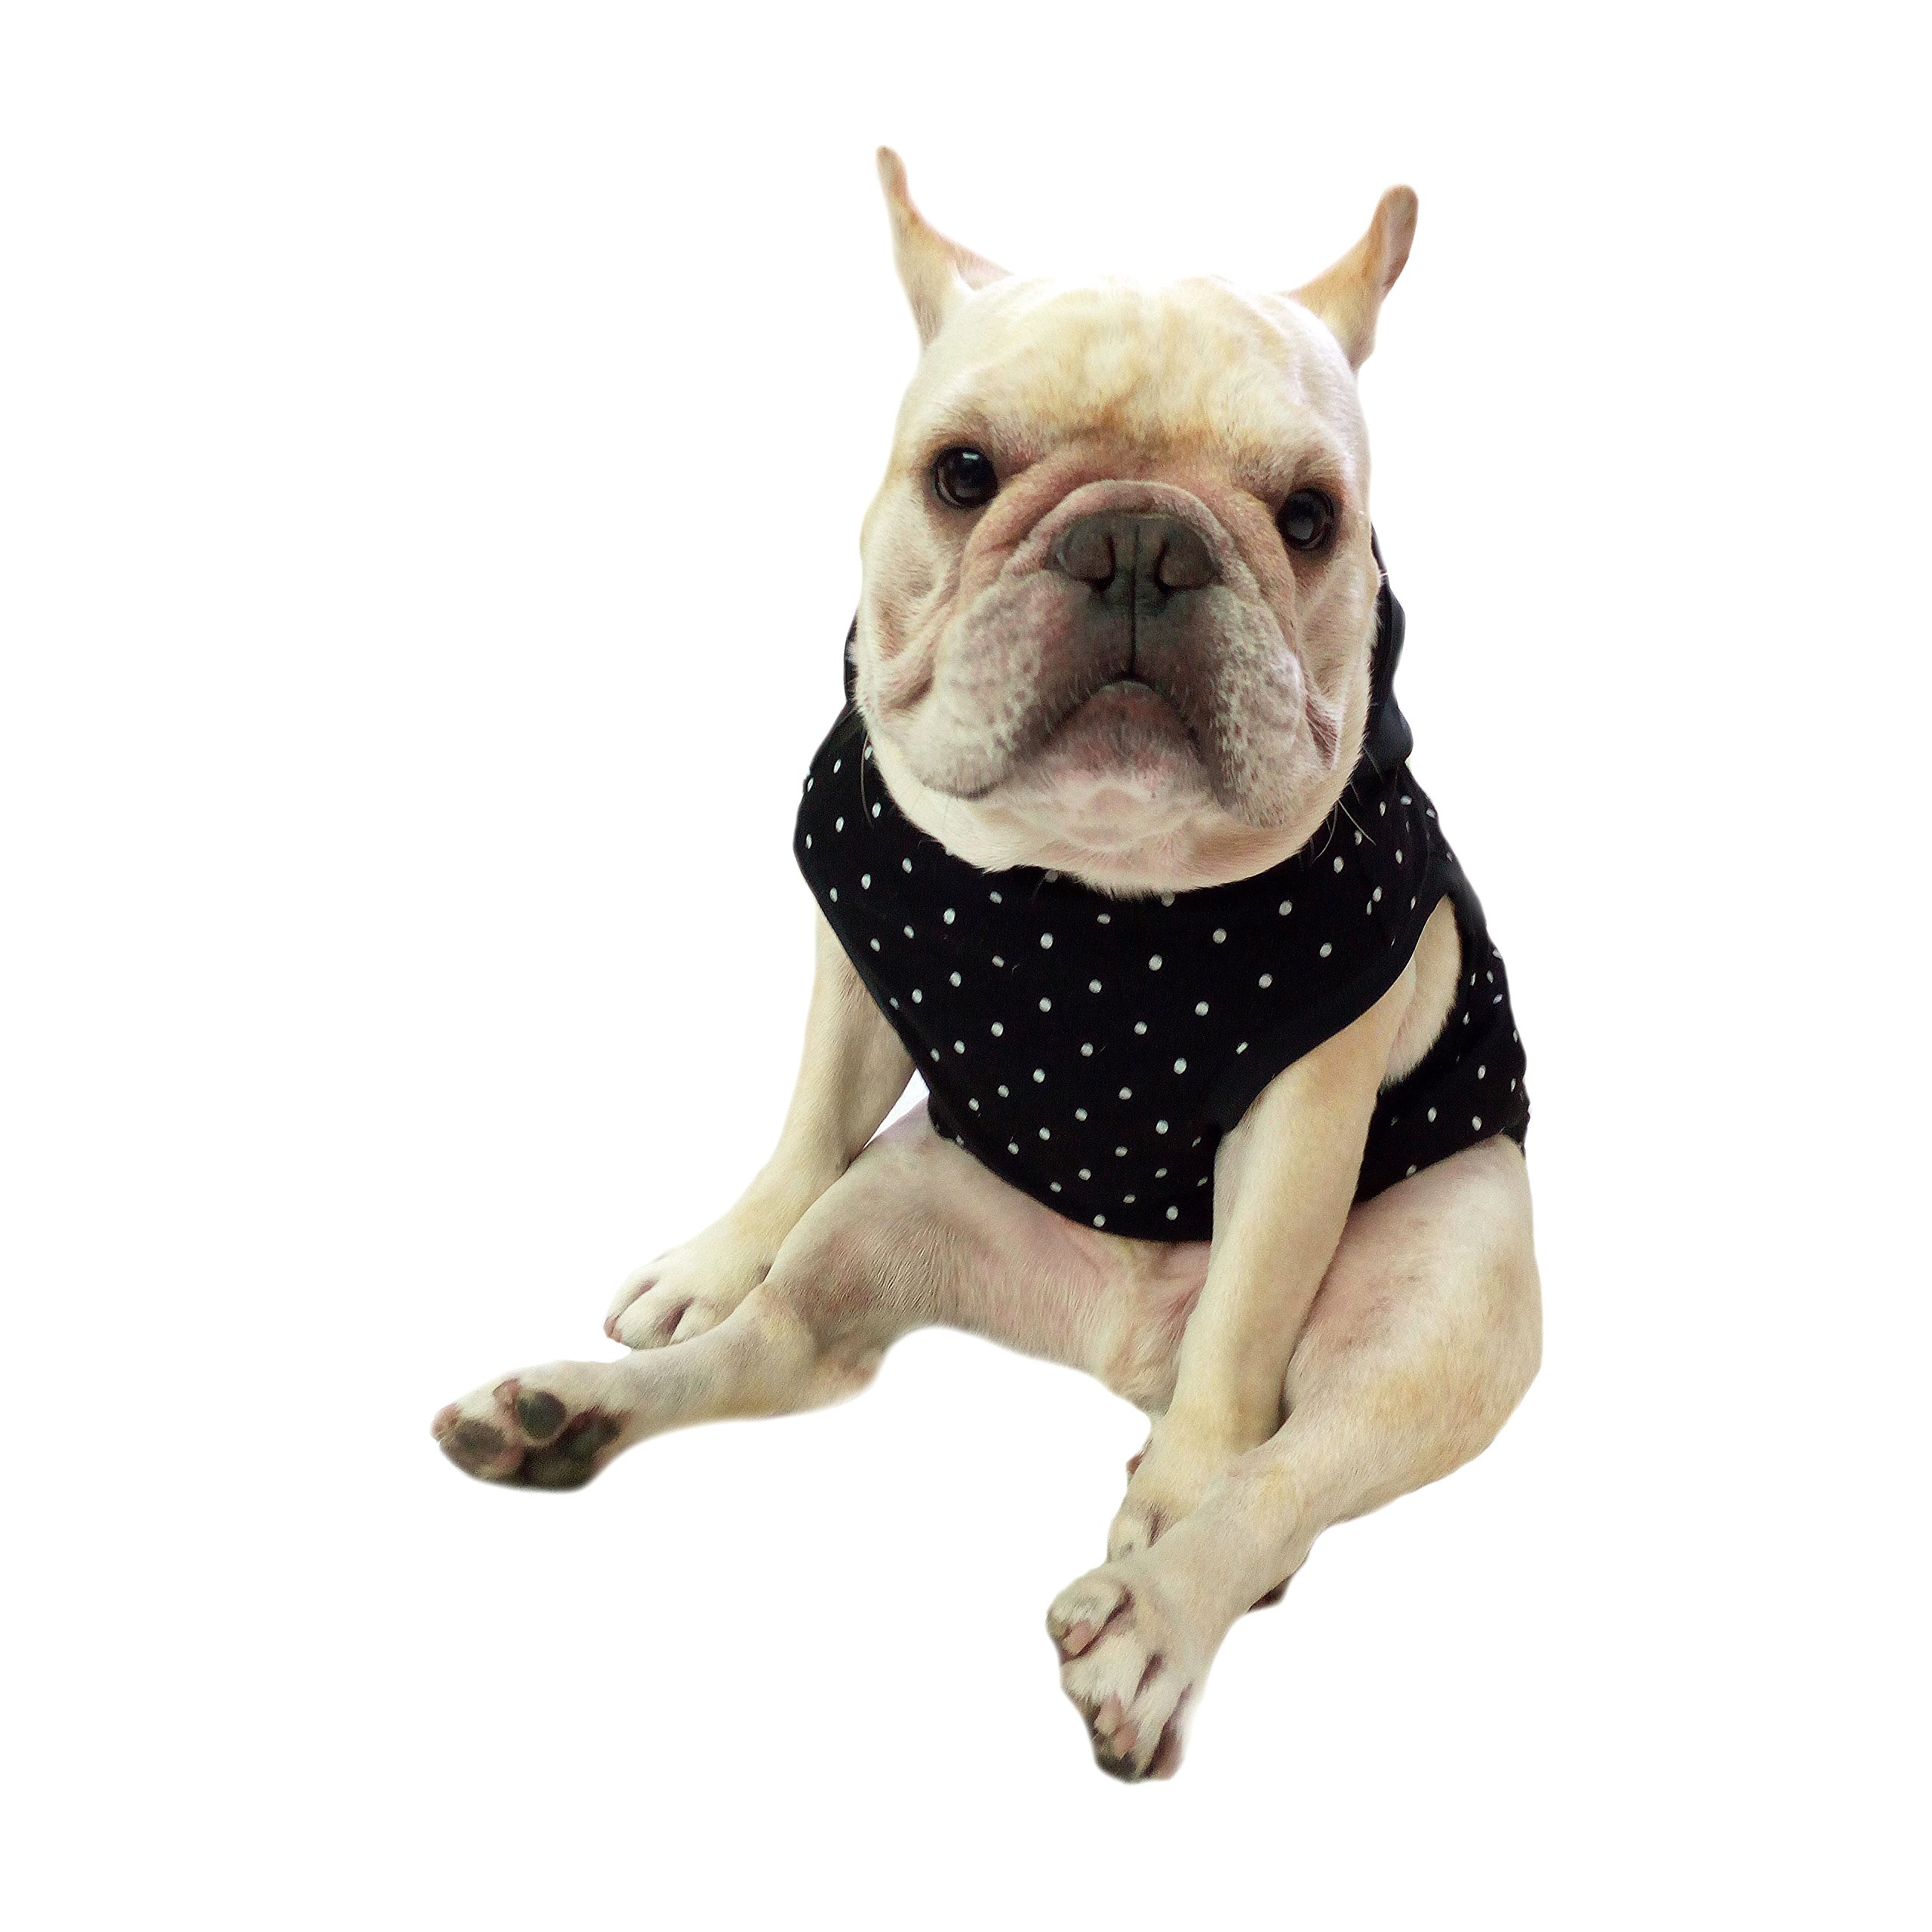 MSFREN Frenchie Pet Apparel Black dot with Black Hoodie and yellow Pompon for French Bulldog or Pug Wear